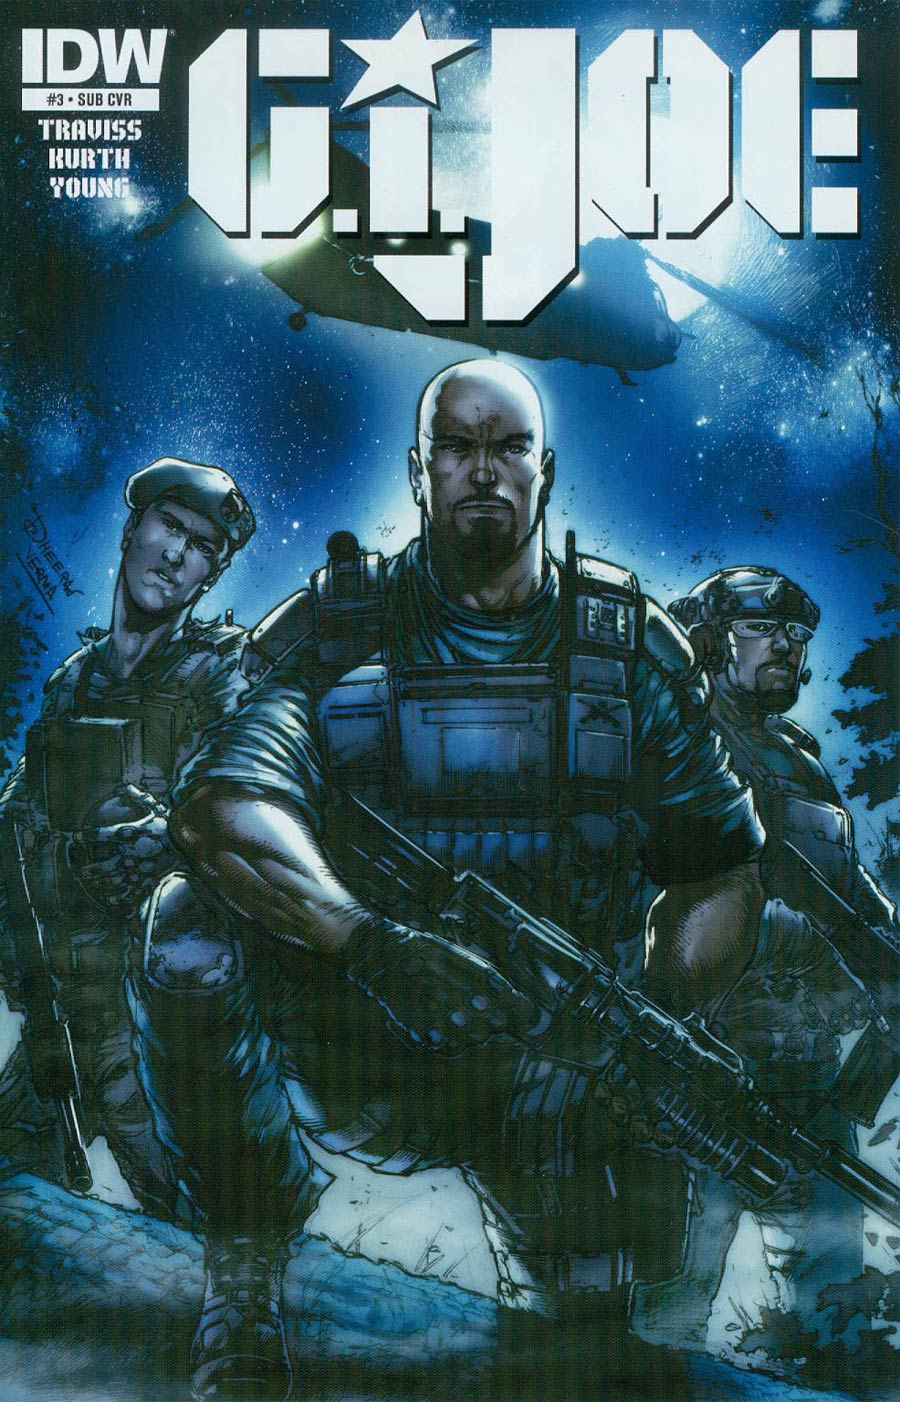 GI Joe Vol 7 #3 Cover B Variant Dheeraj Verma Subscription Cover